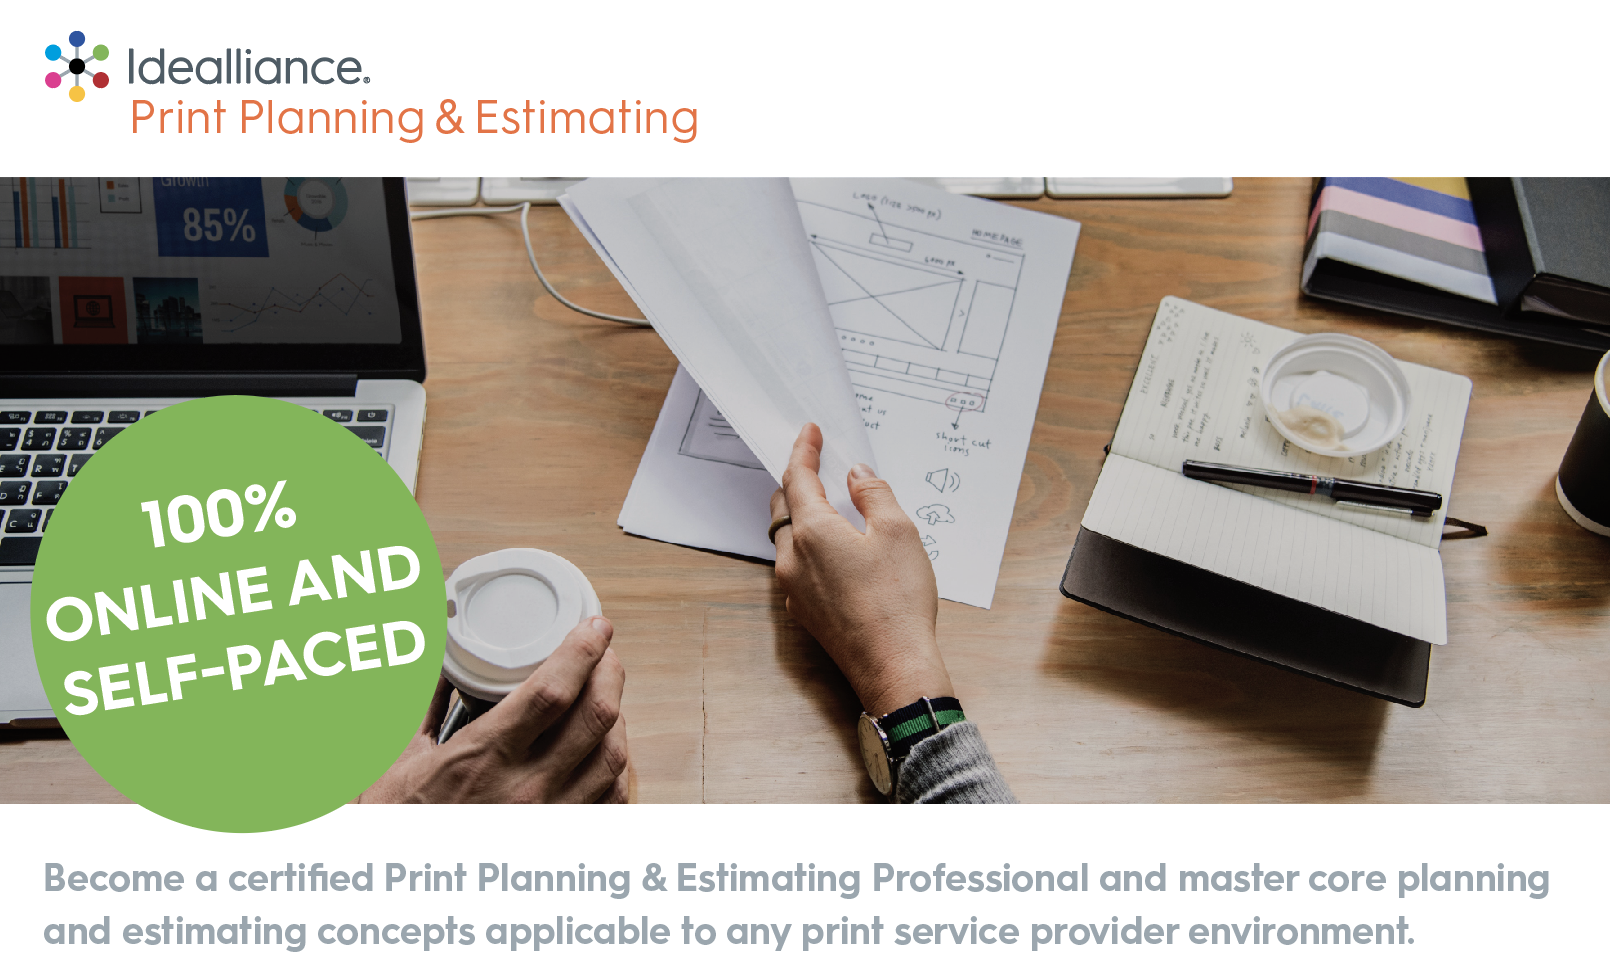 Print Planning & Estimating Certification Courses - Idealliance